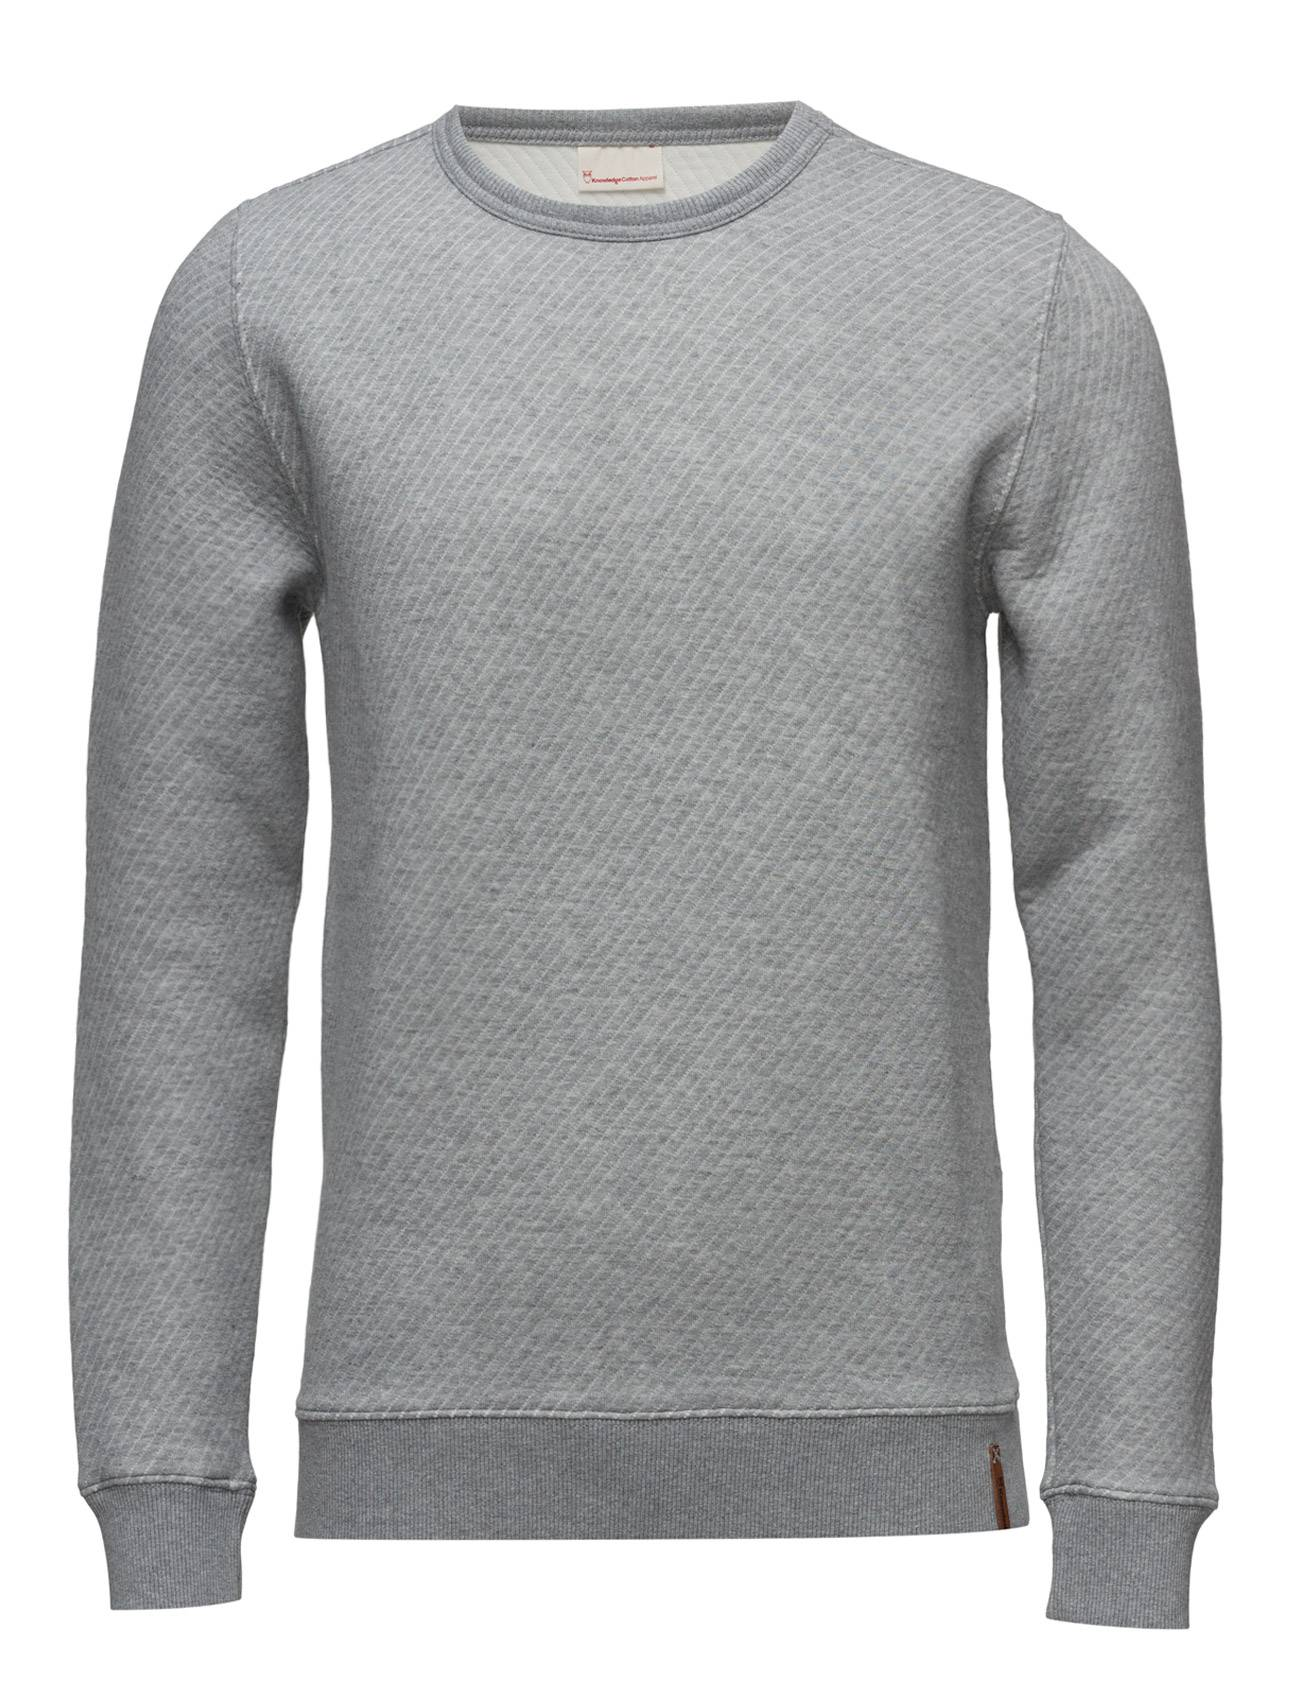 Knowledge Cotton Apparel Diagonal Quilted Sweat Shirt - Ocs